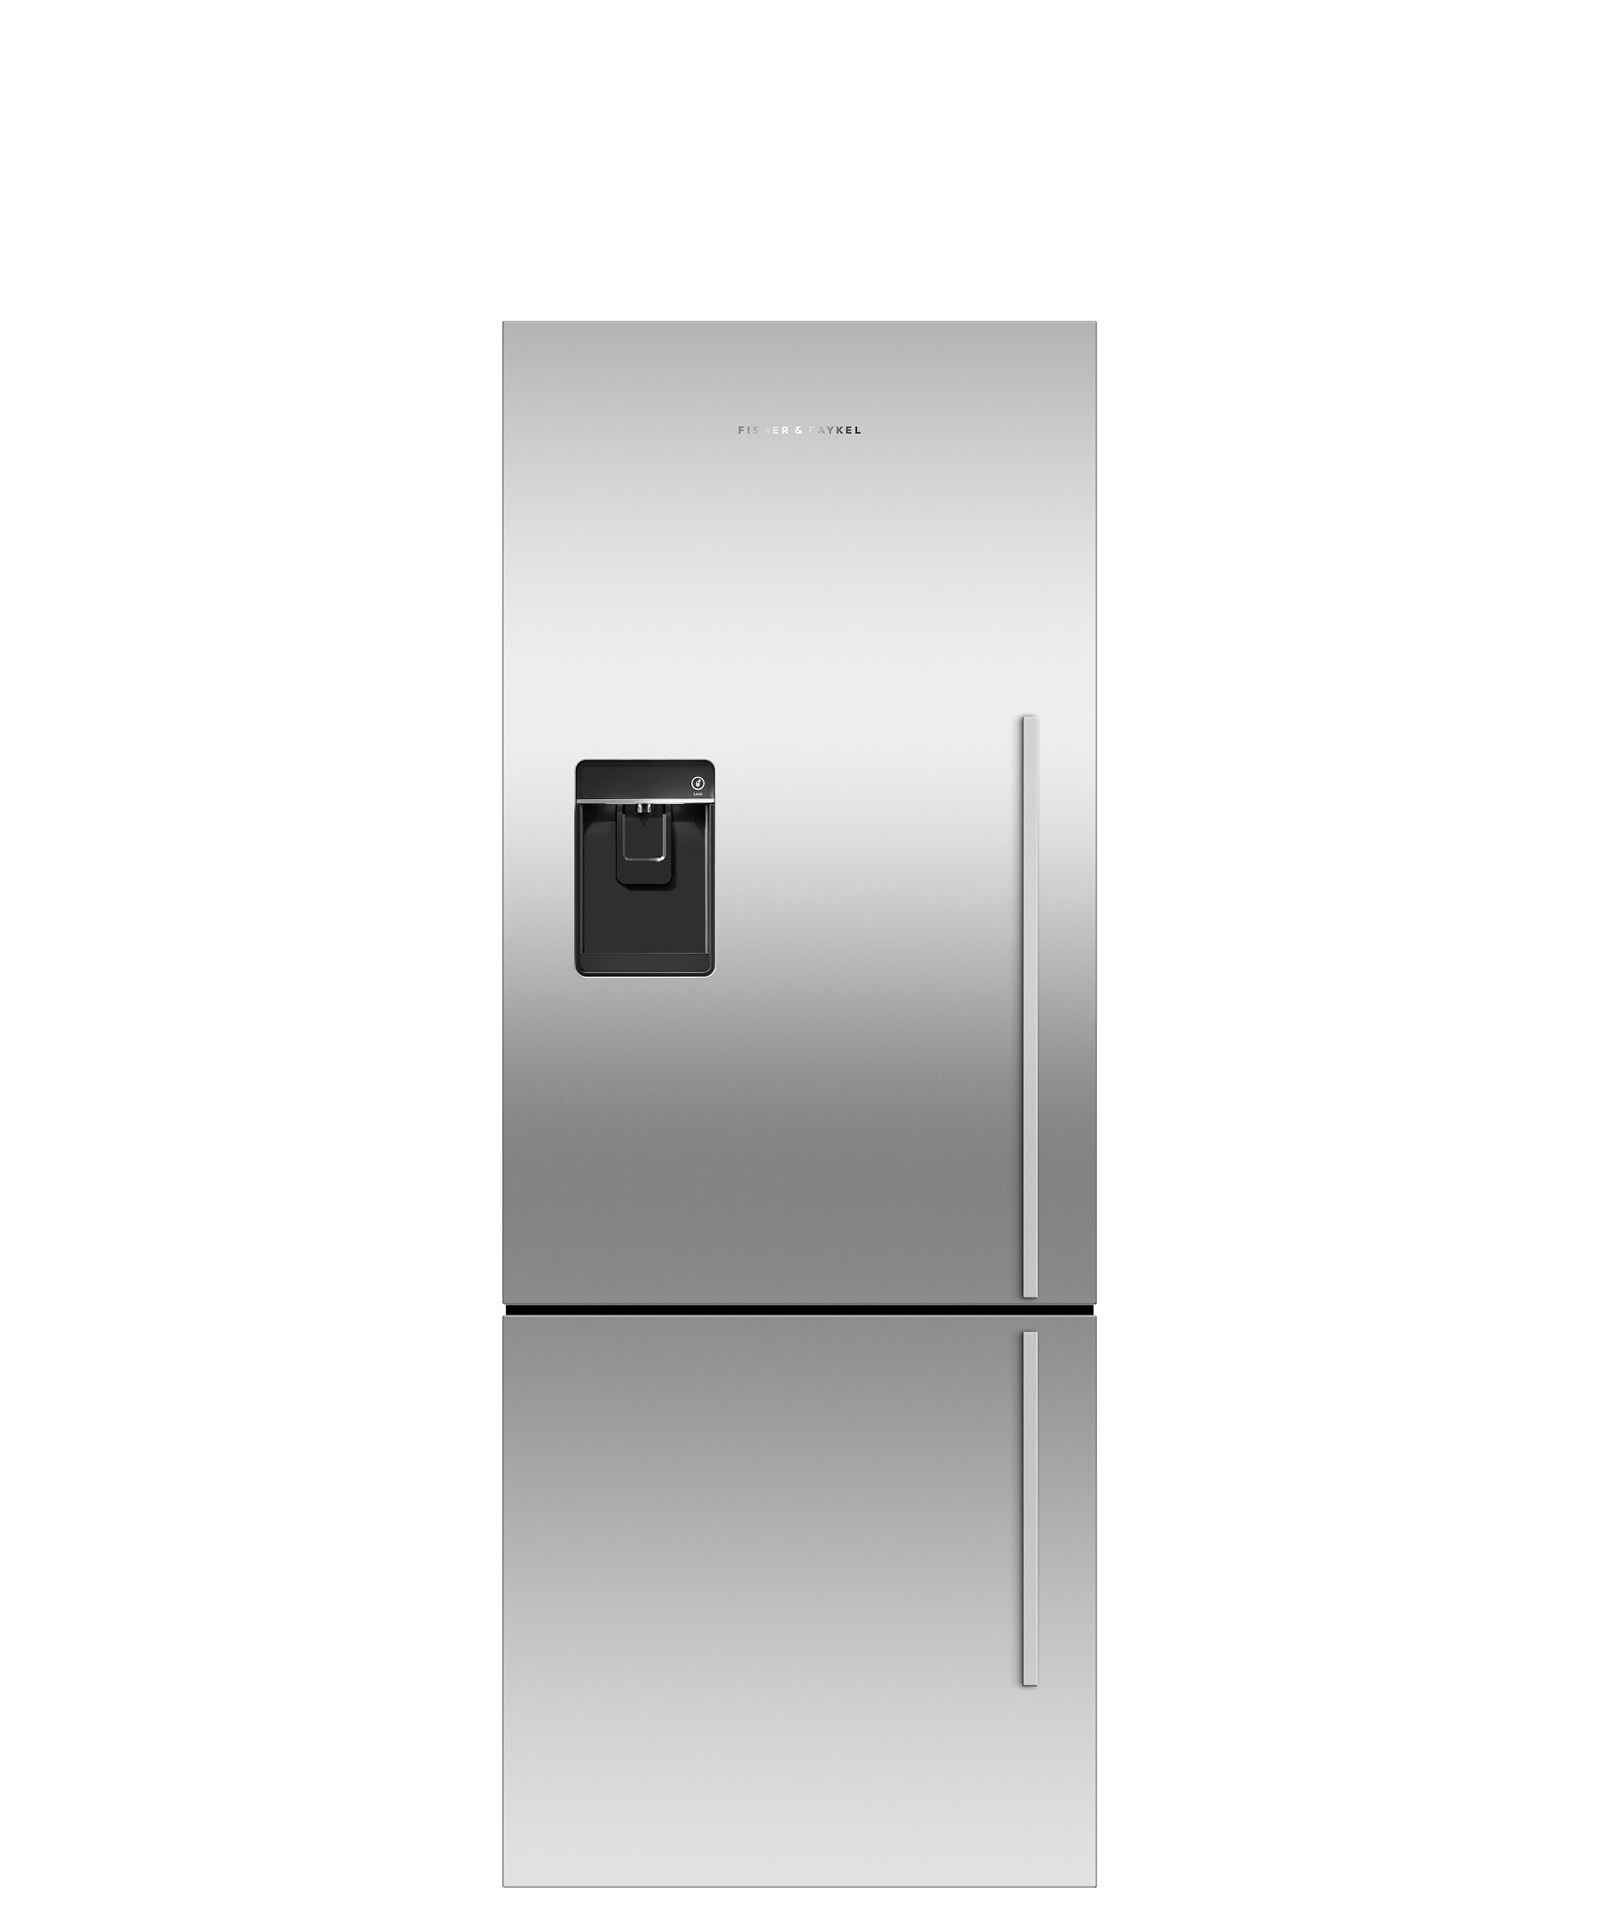 Model: RF135BDLUX4_N | Counter Depth Refrigerator 13.5 cu ft, Ice & Water